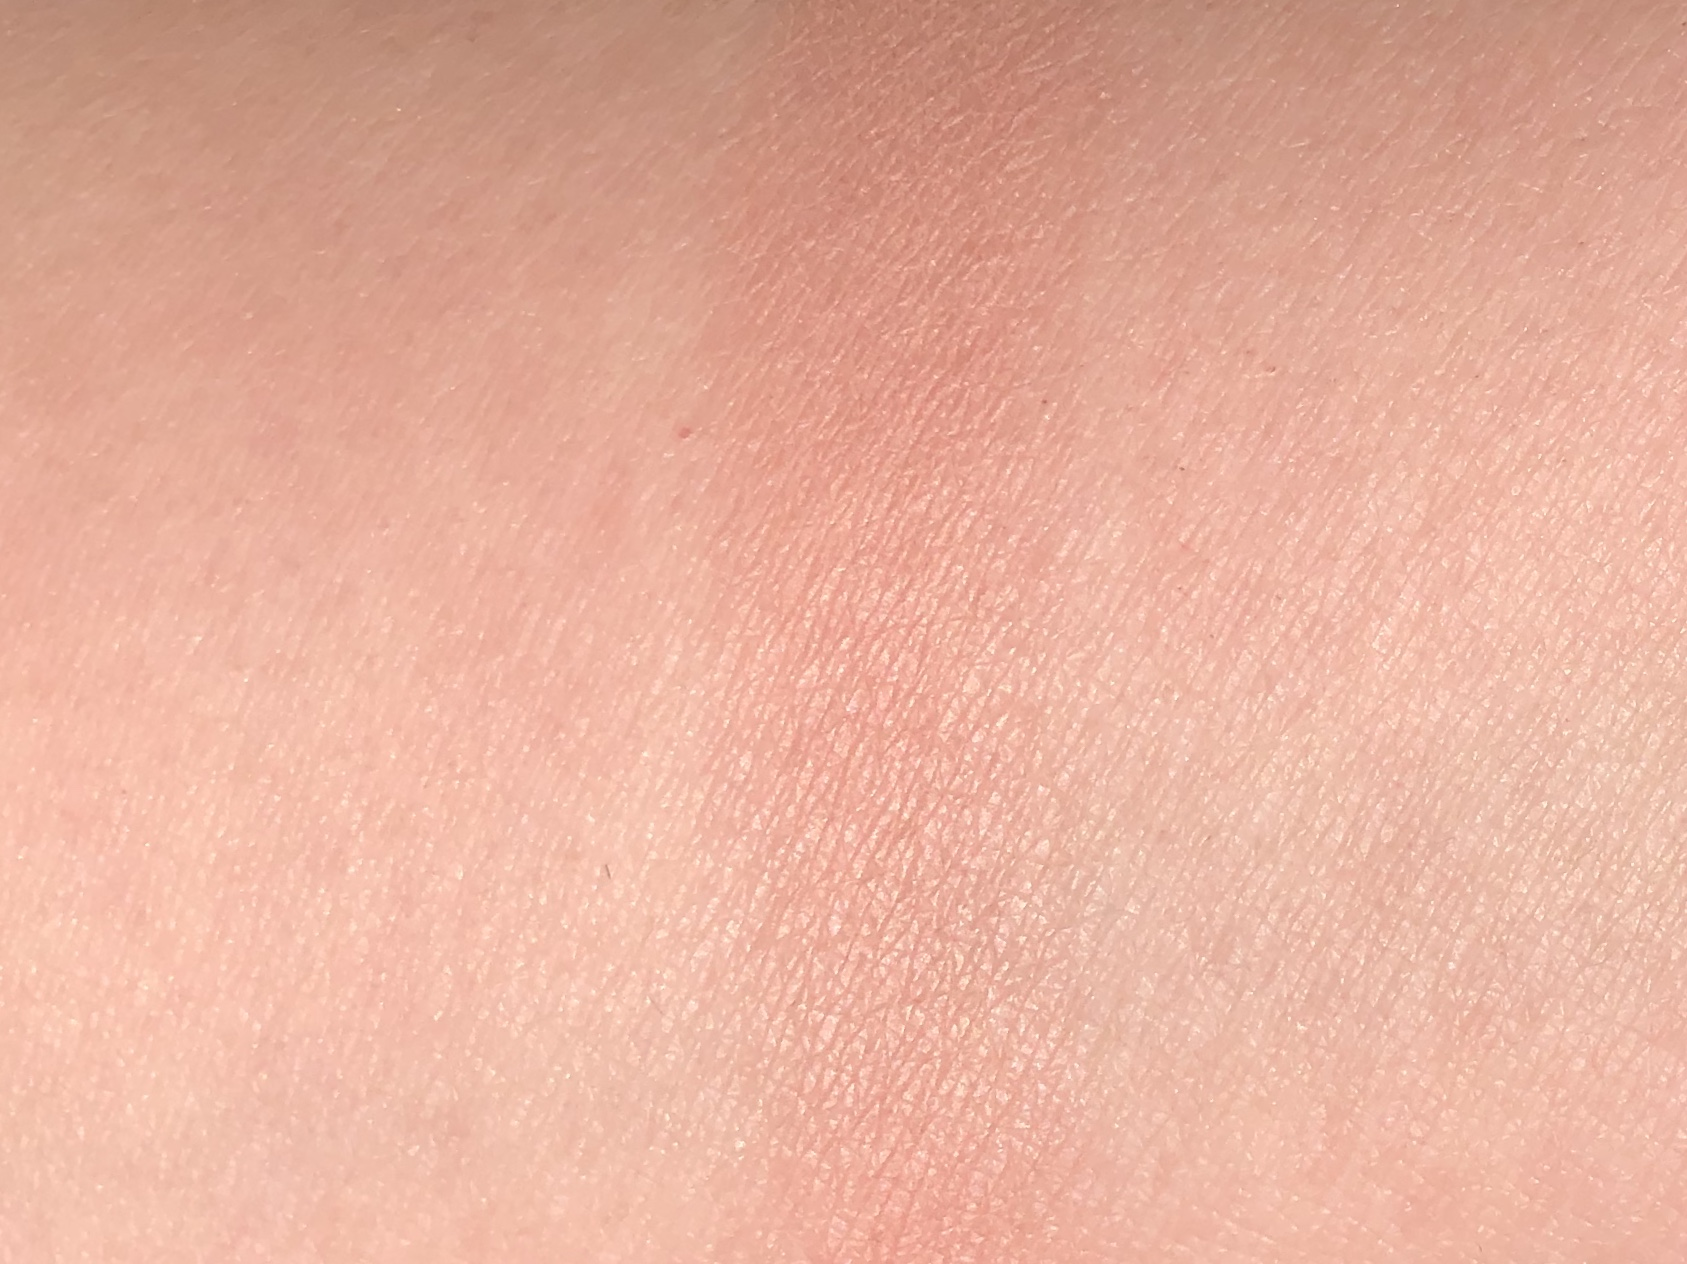 Essence 40 Blossom Me Up! Matt Touch Blush Review 4